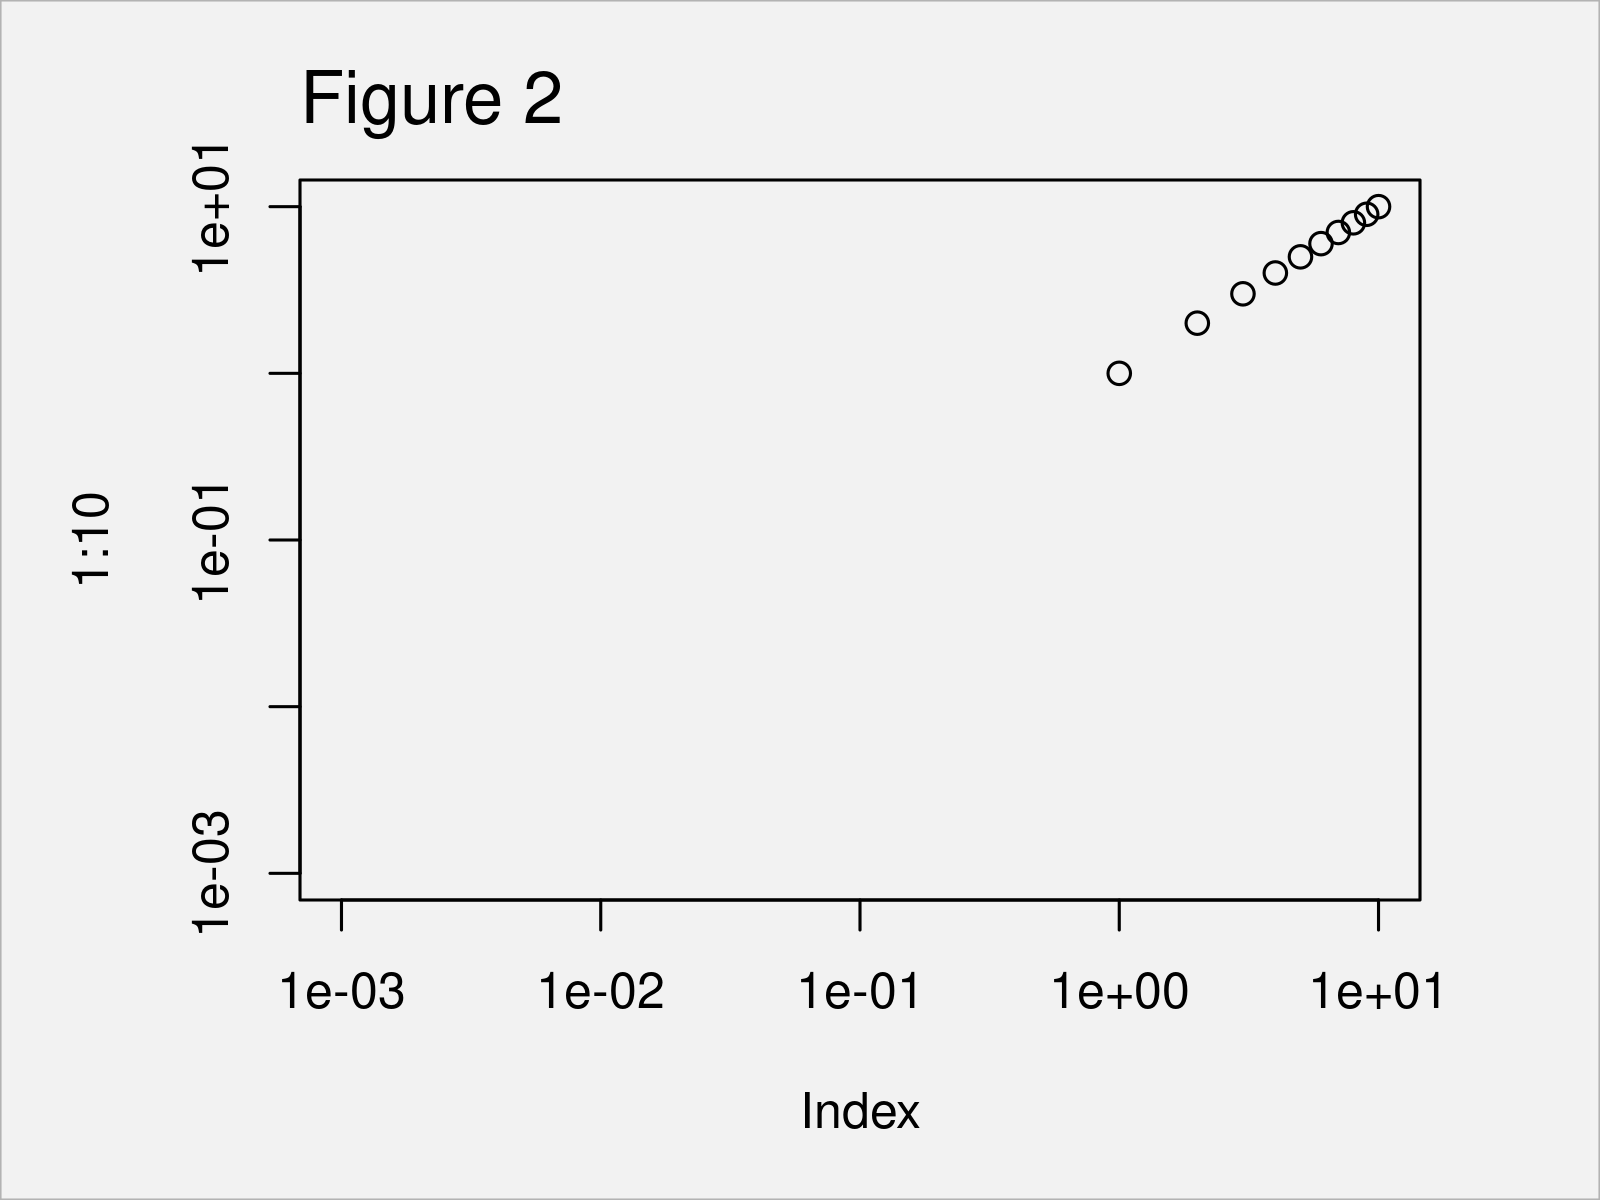 r graph figure 2 r warning messages window nonfinite axis limits log